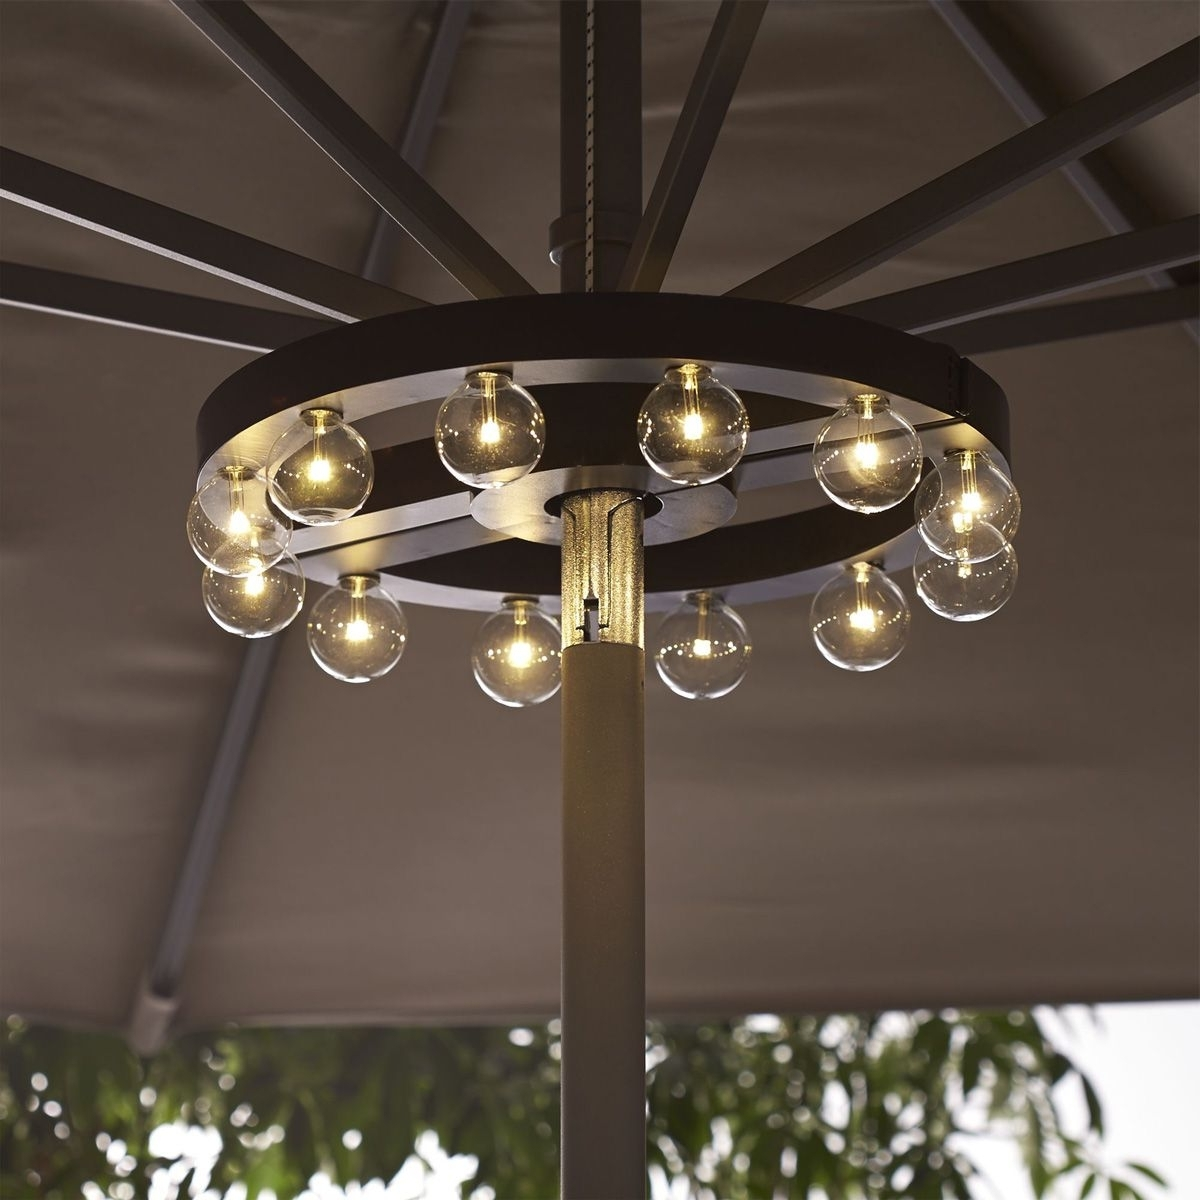 2019 Solar Lights For Patio Umbrellas • Patio Ideas Regarding Solar Patio Umbrellas (Gallery 19 of 20)